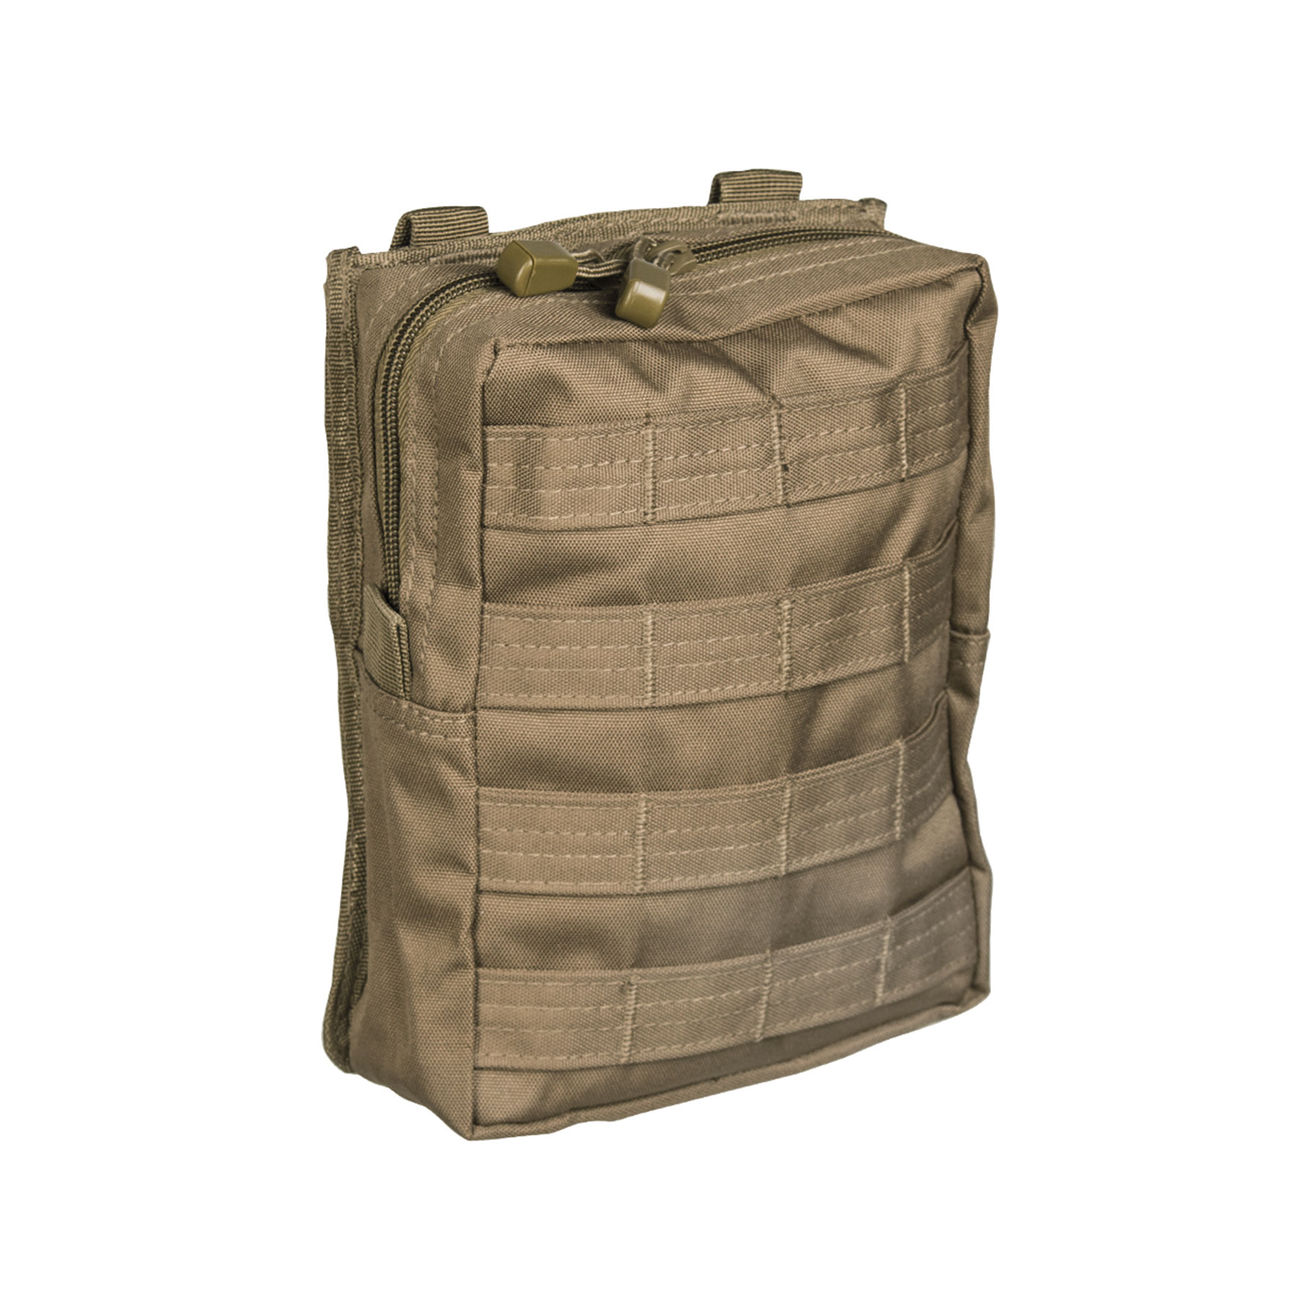 Mil-Tec Molle Belt Pouch LG Dark Coyote 0